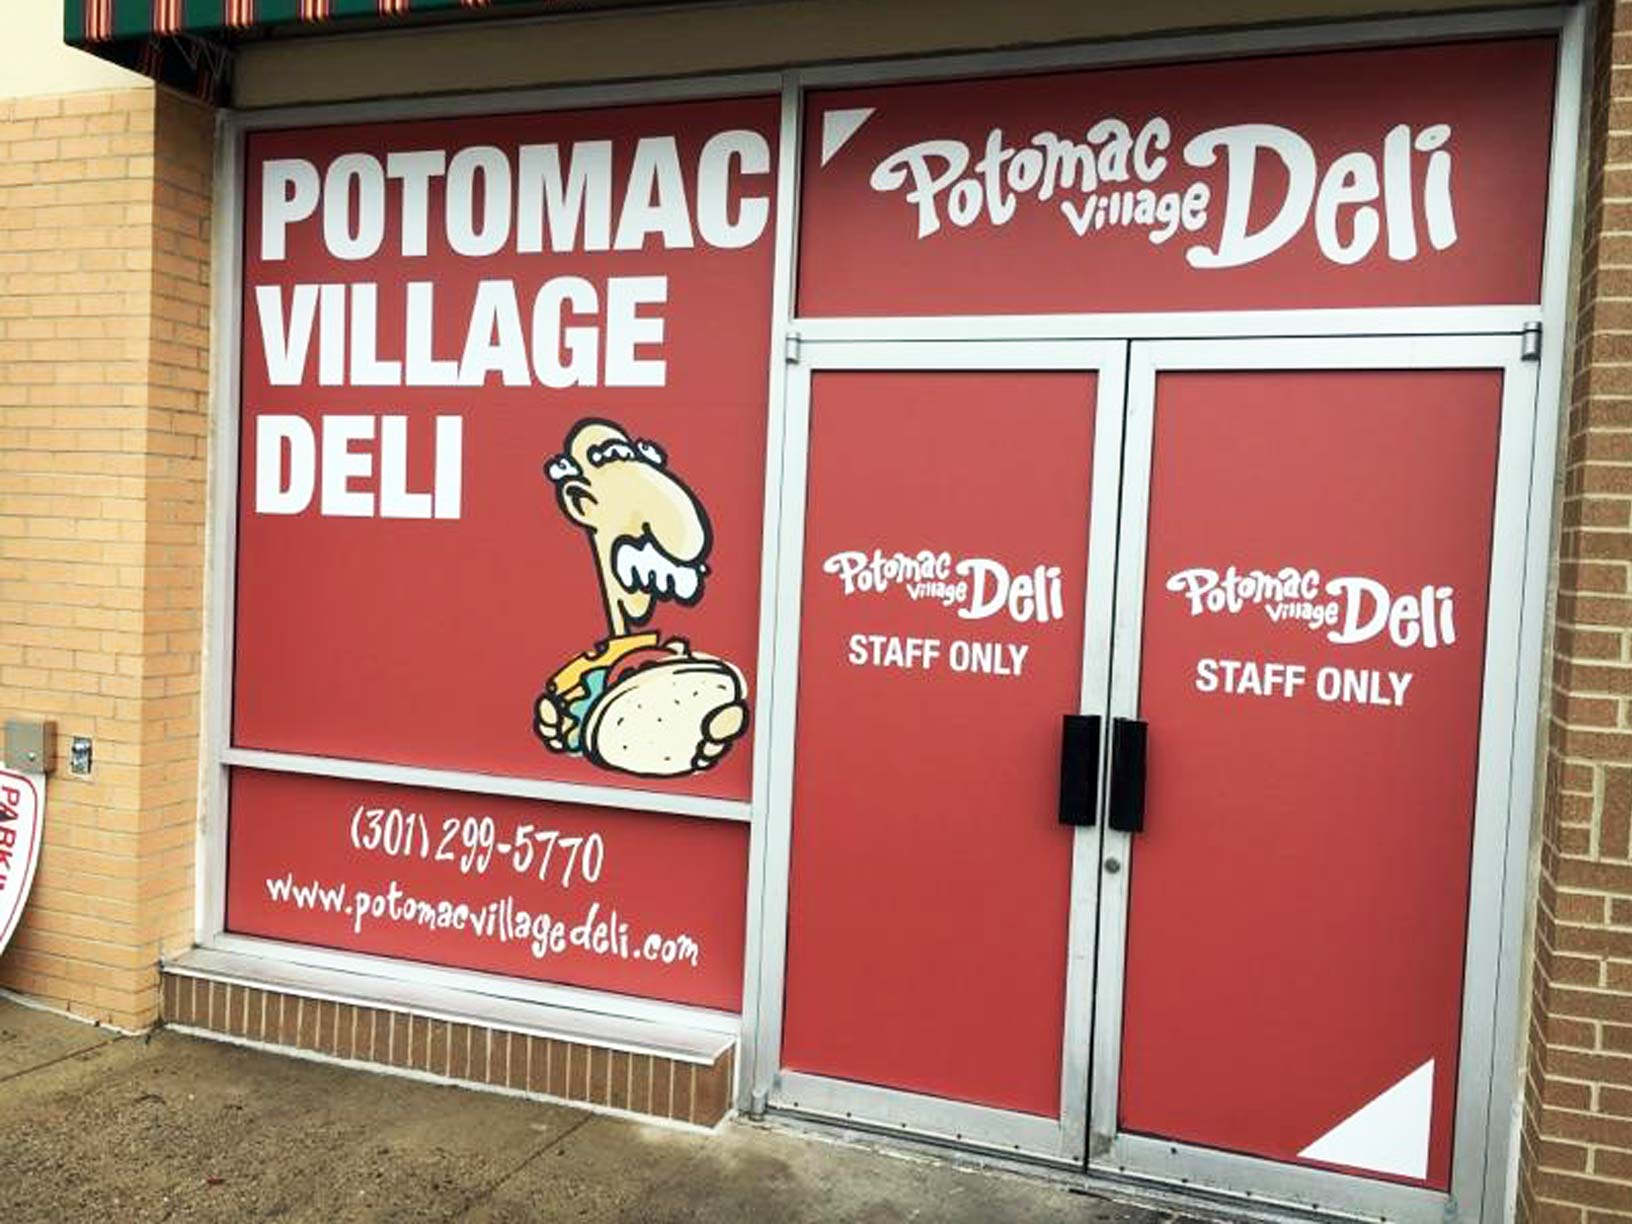 potomac village deli full coverage vinyl window graphics